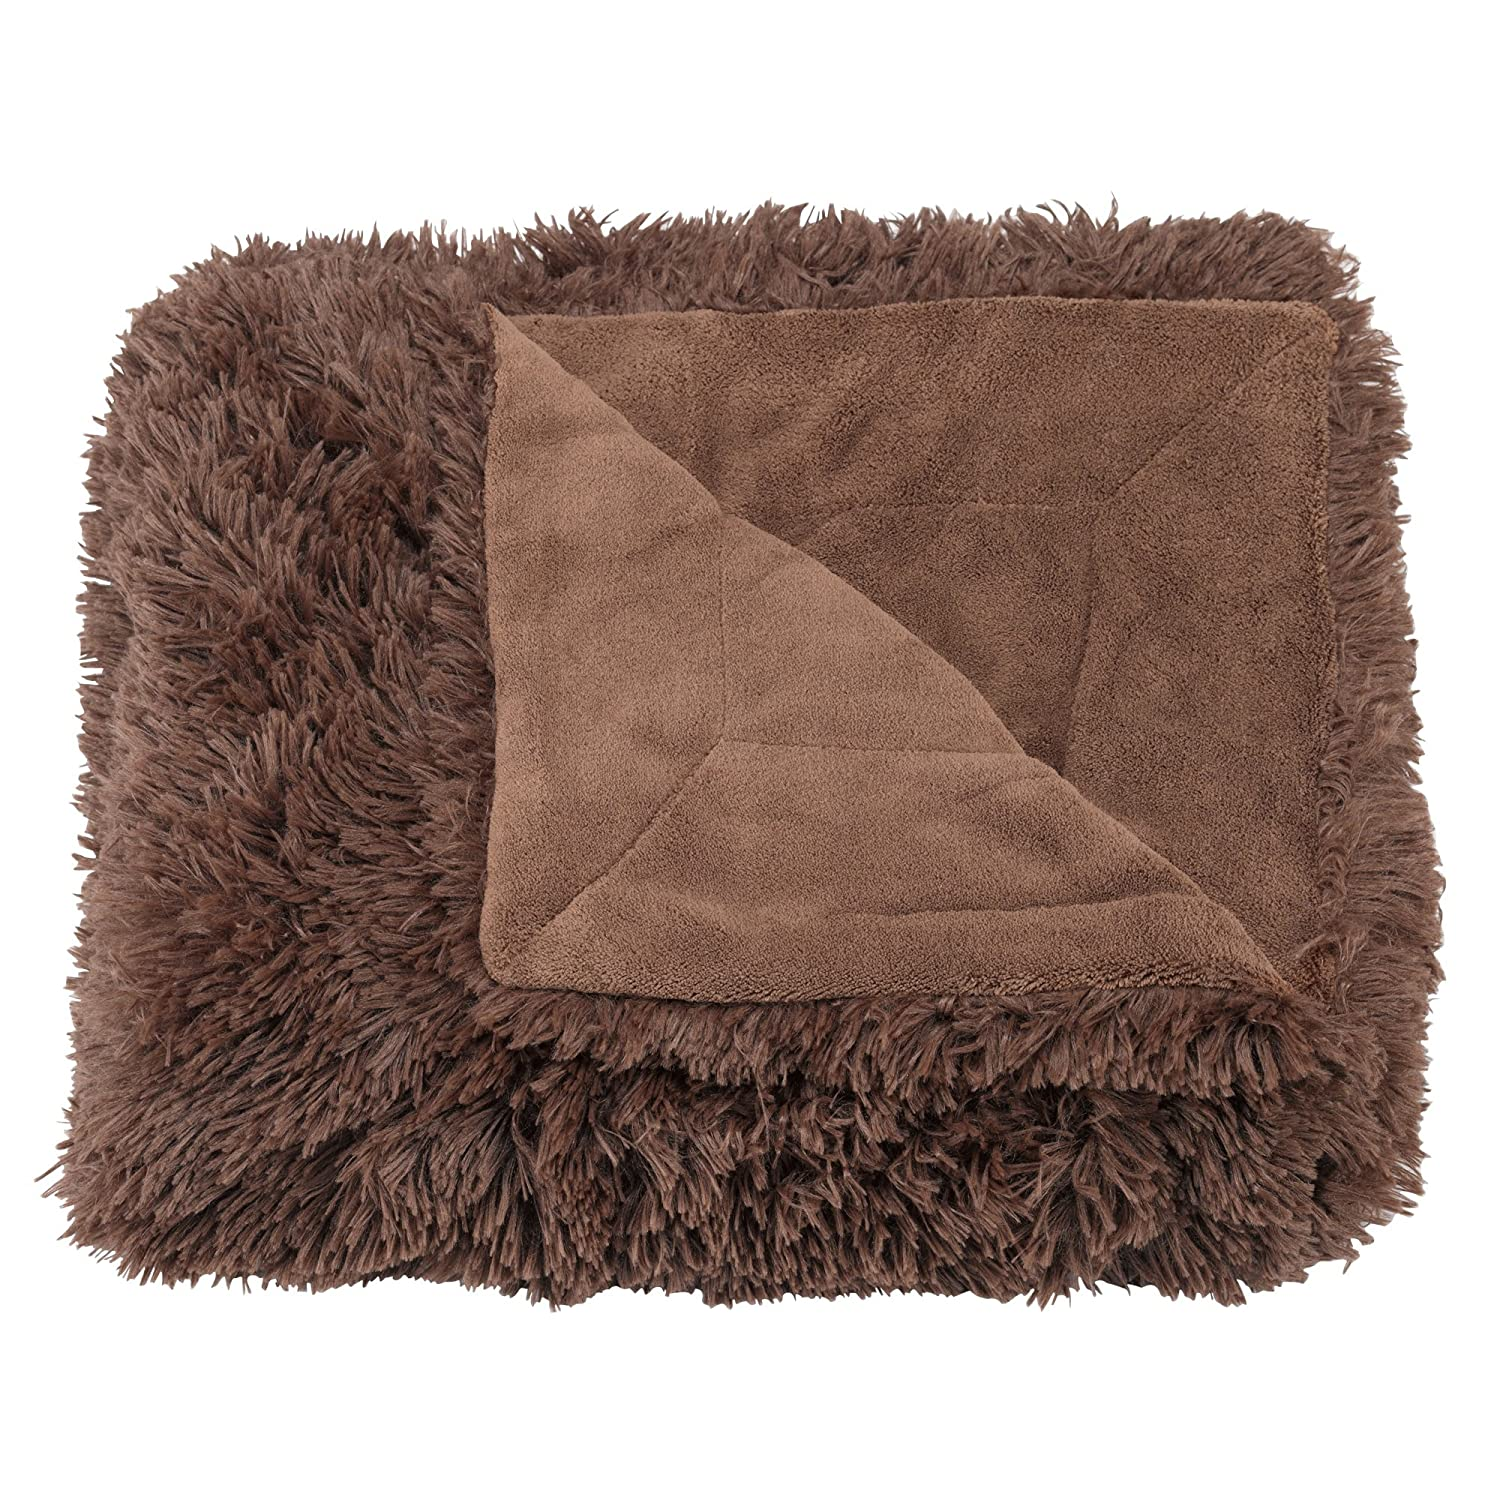 Britannica home fashions tencel sheets - Amazon Com Casual Living Super Plush Shaggy Oversized Throw 60 By 70 Inch Brown Home Kitchen